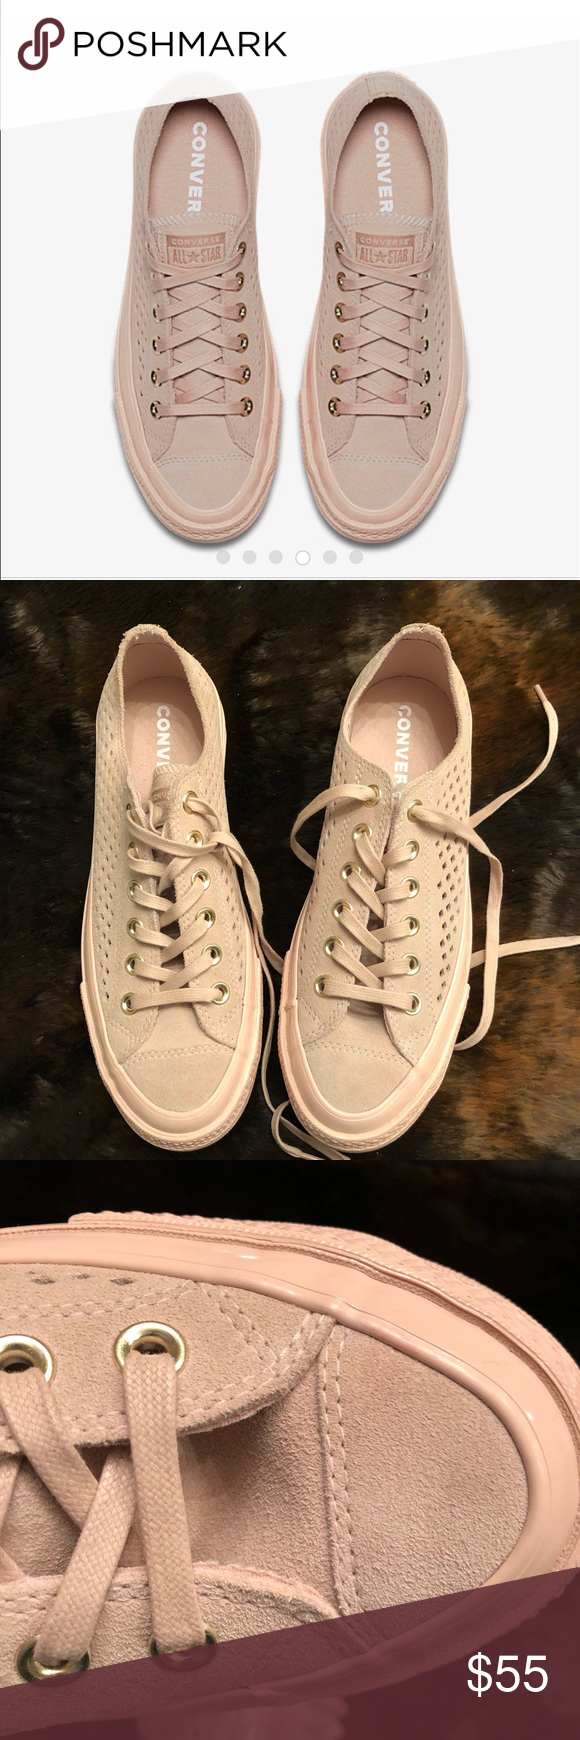 Converse Chuck Taylor All Star Suede